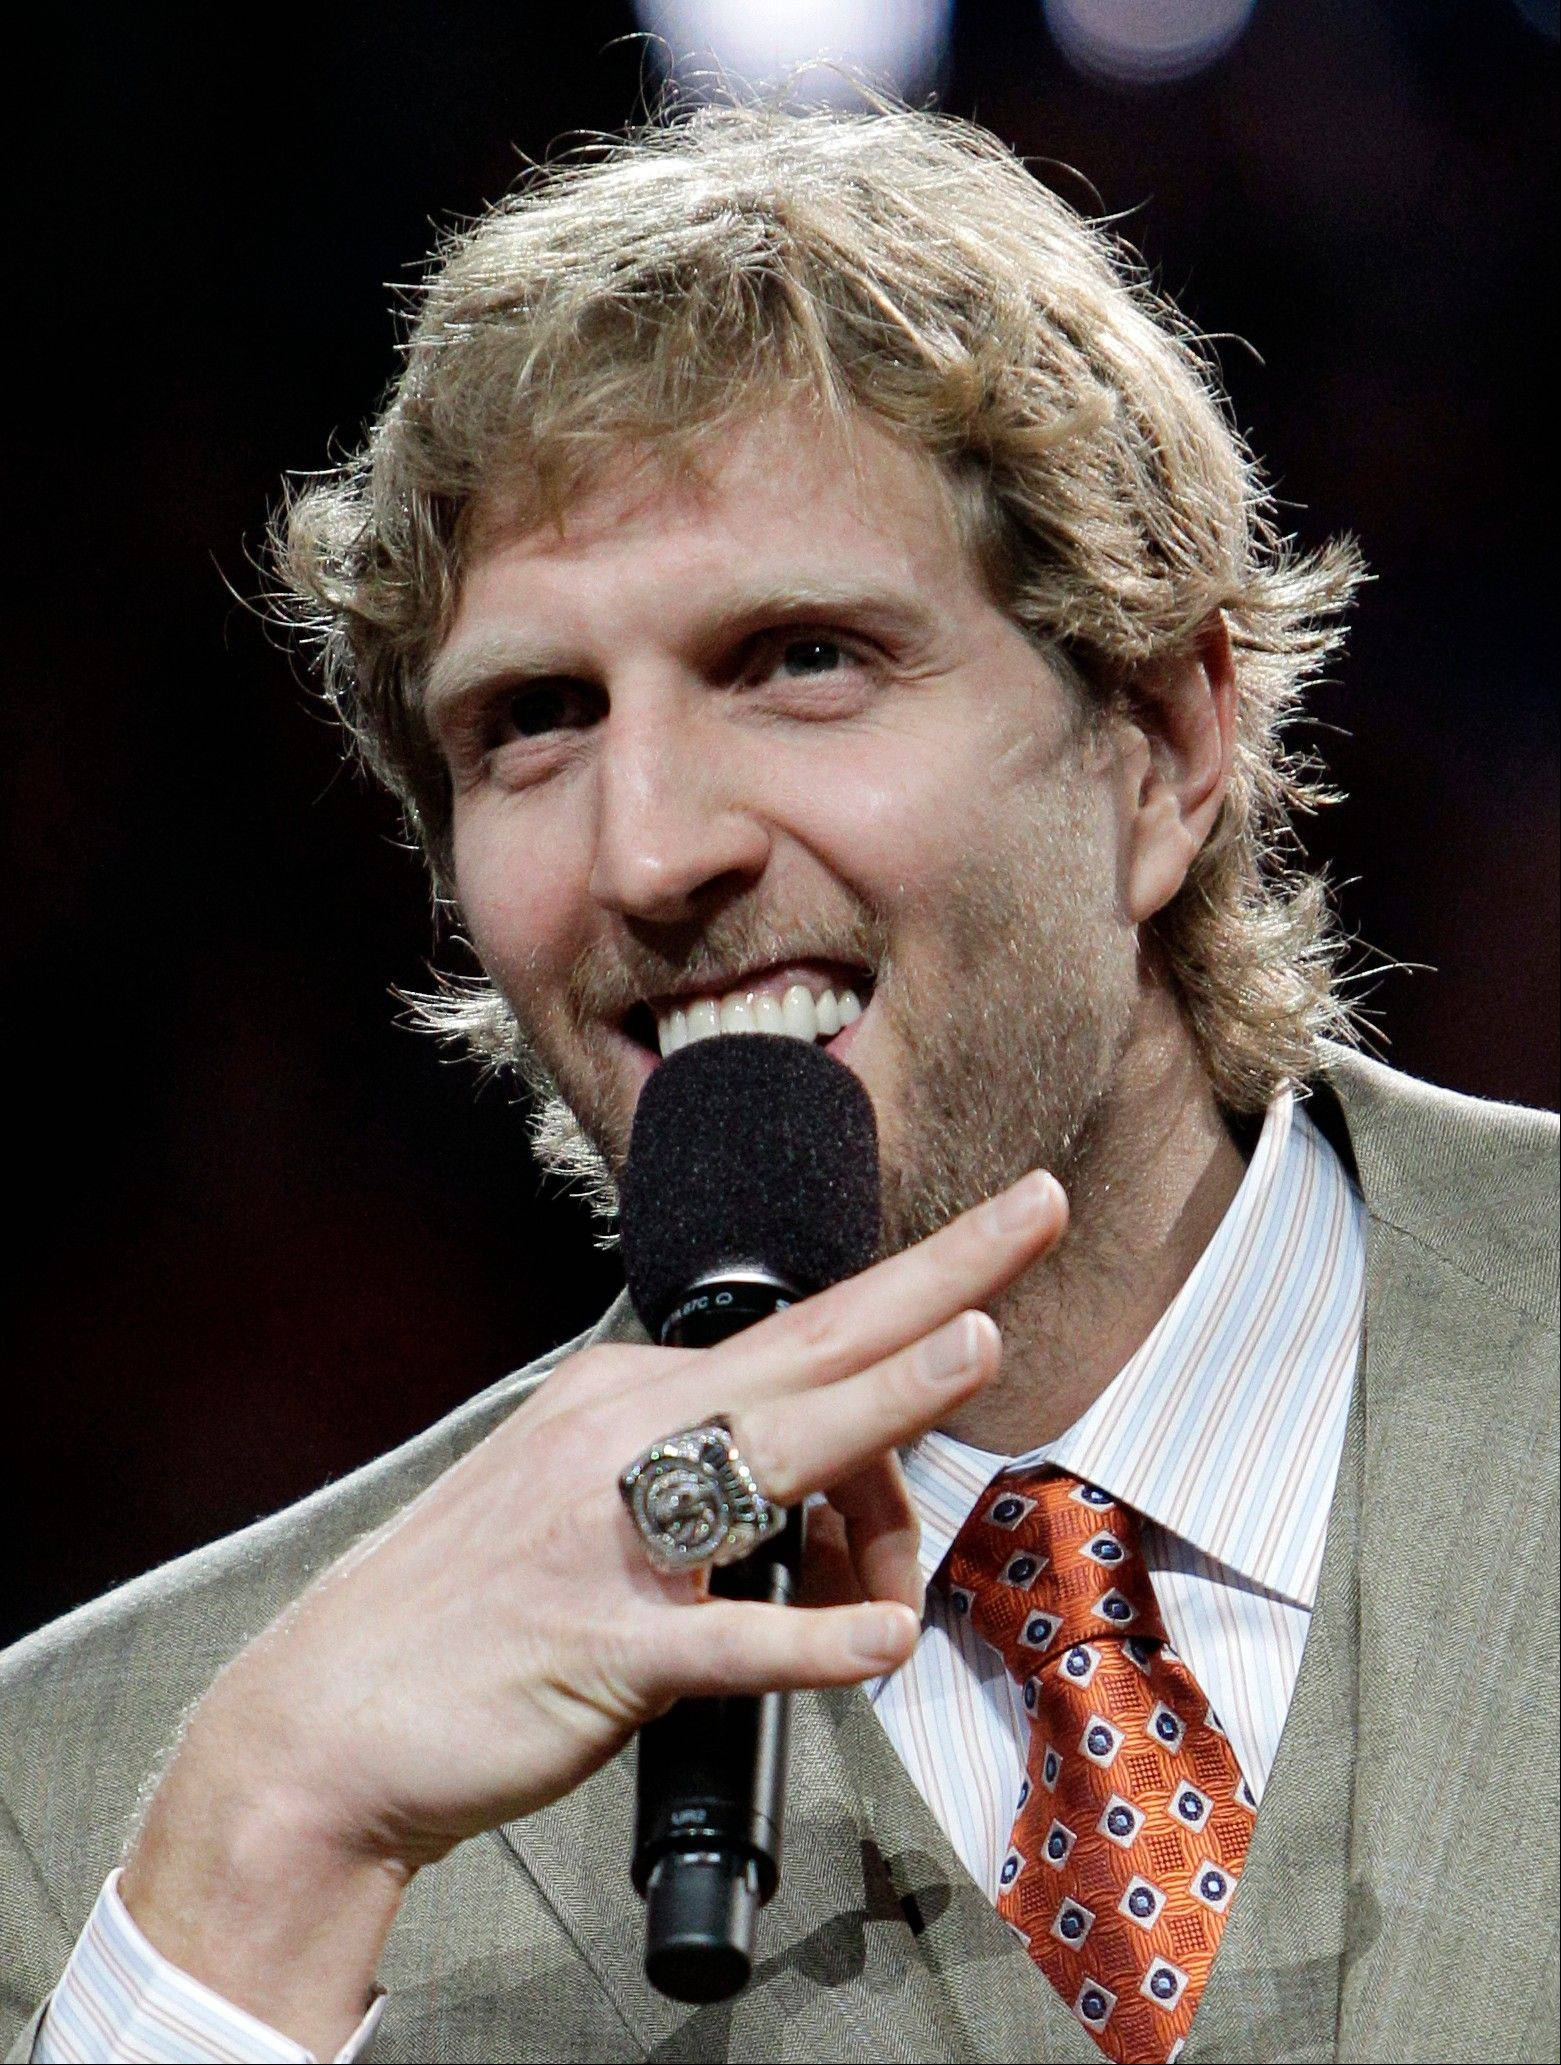 Dirk Nowitzki addresses the crowd after the NBA championship ring presentation Wednesday in Dallas.